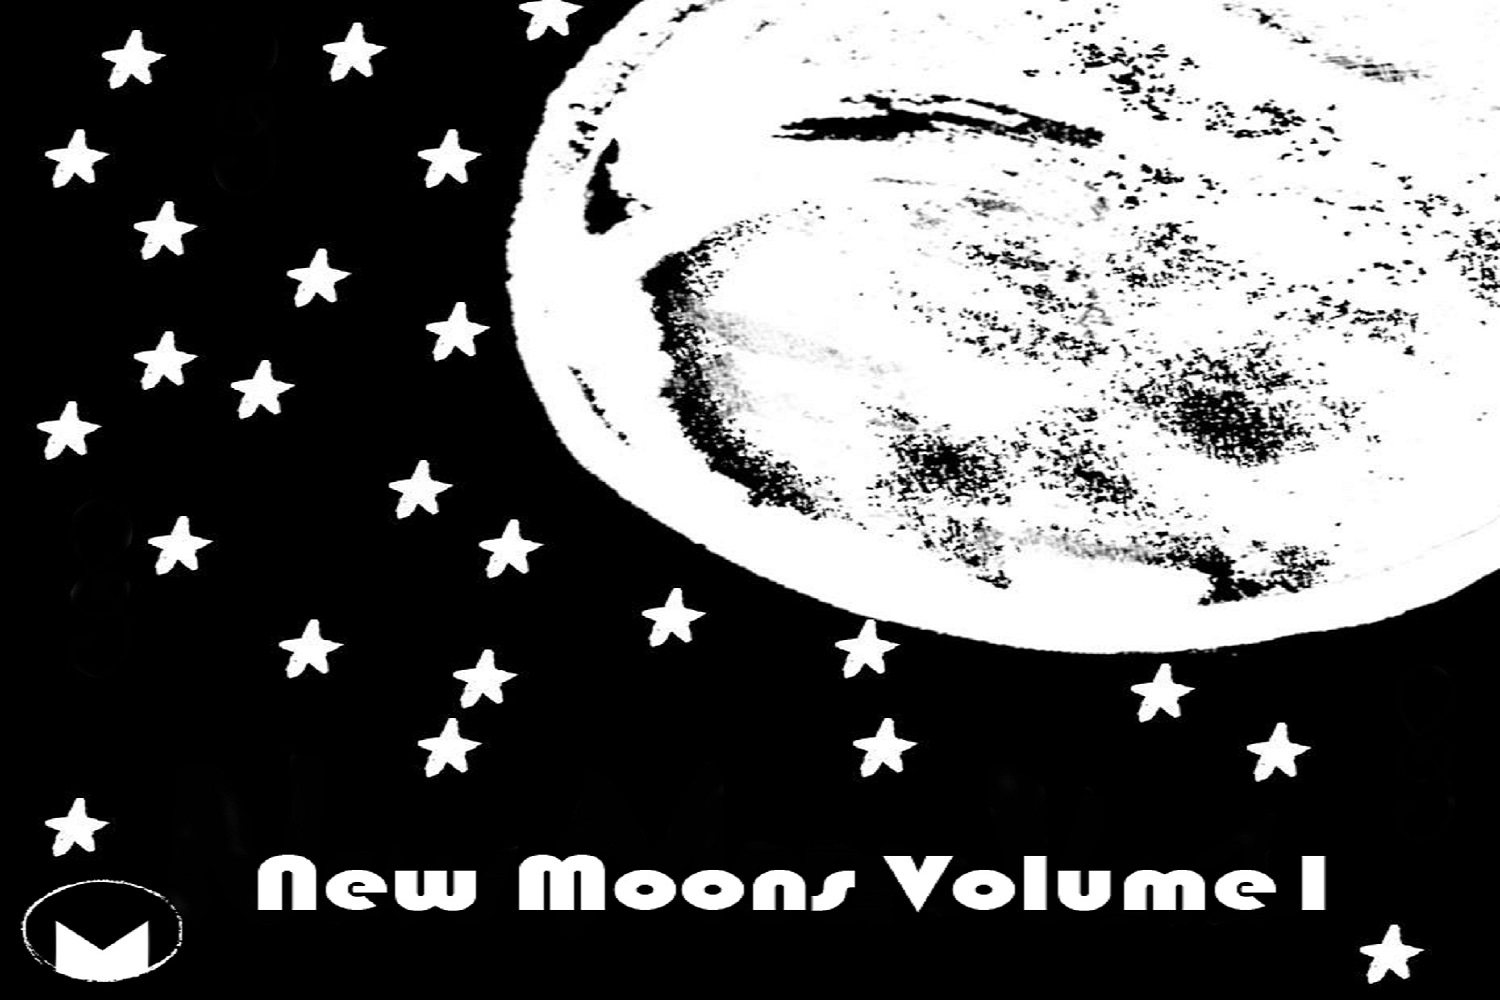 Release: Killing Moon Announces New Compilation Series With Ally McCrae (BBC Radio 1)